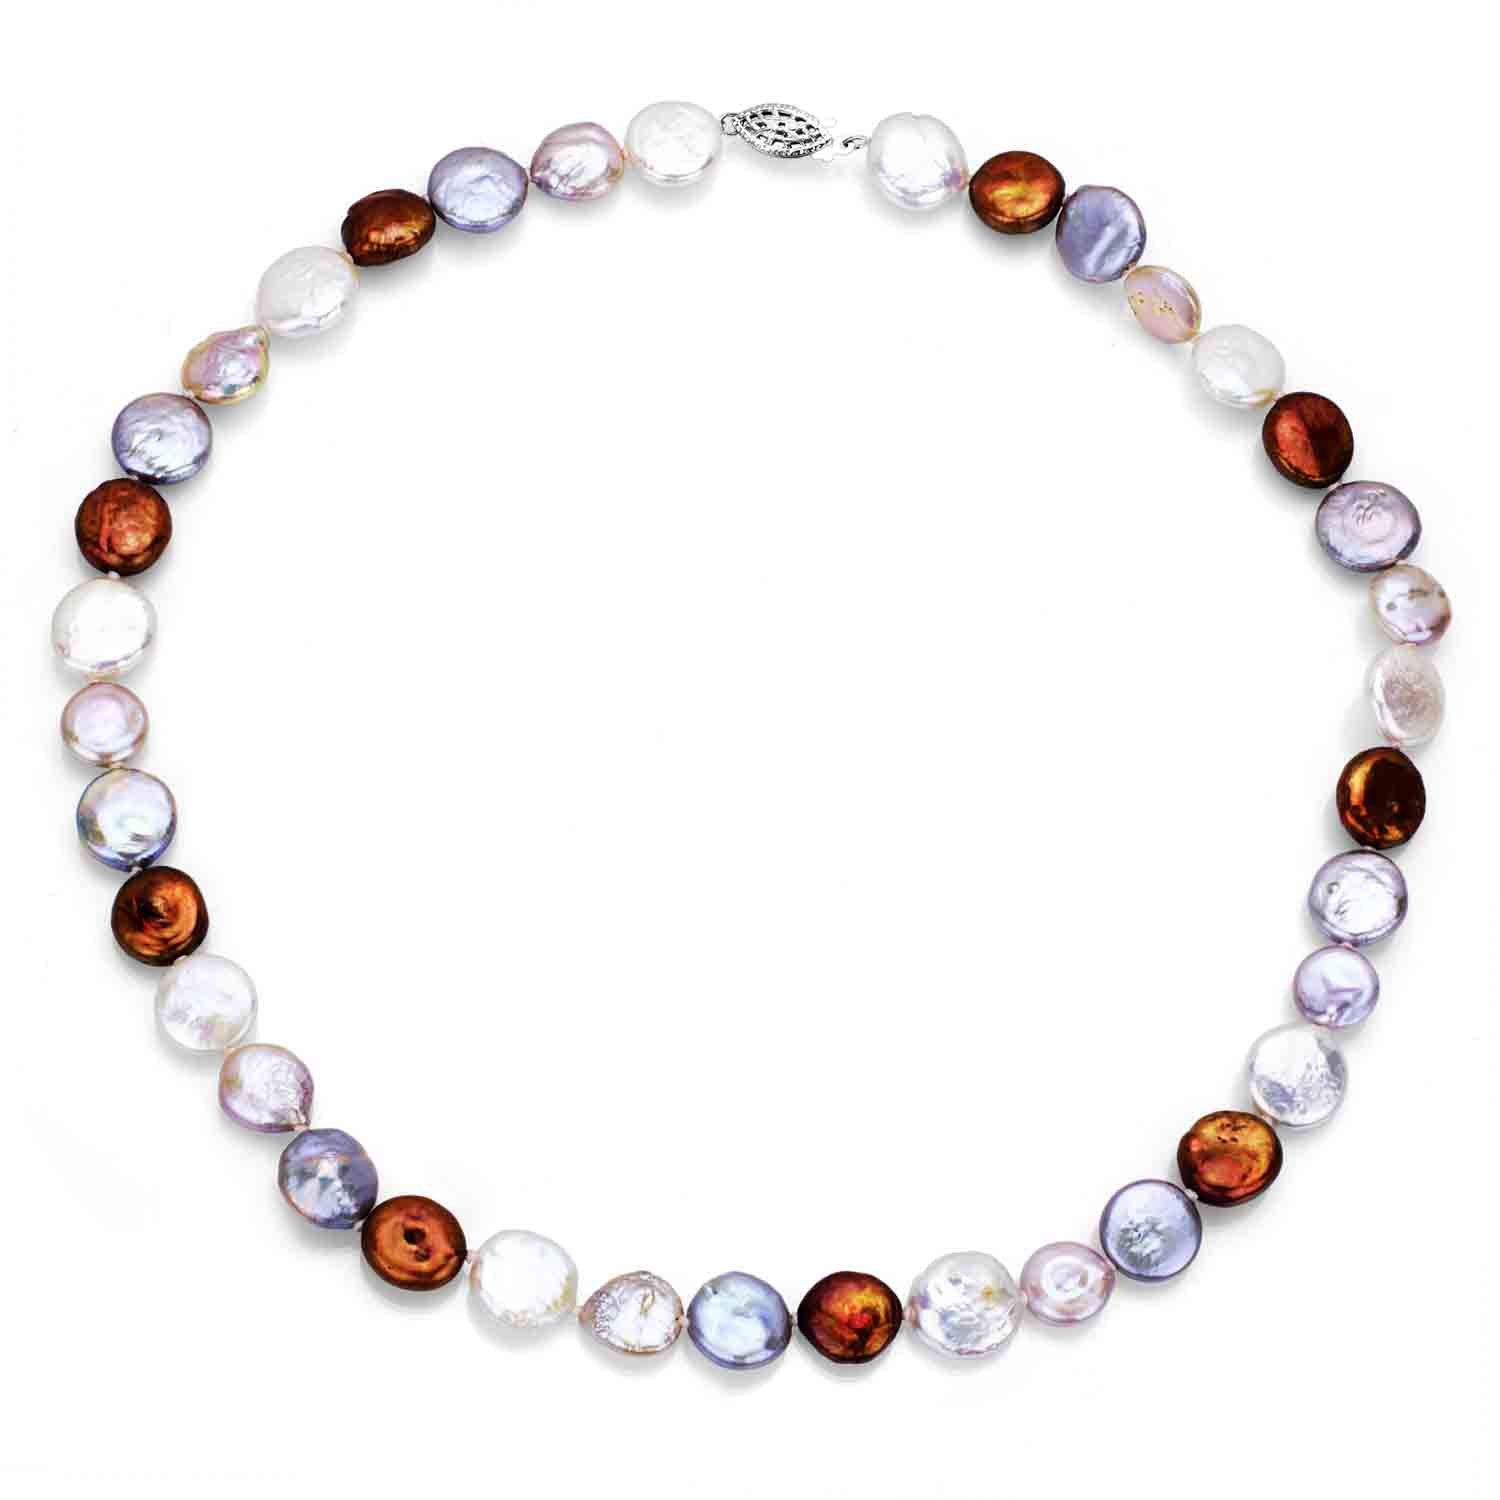 Sterling Silver 9-9.5mm Dyed Multi-color Coin Shape Freshwater Cultured Pearl Necklace, 18''